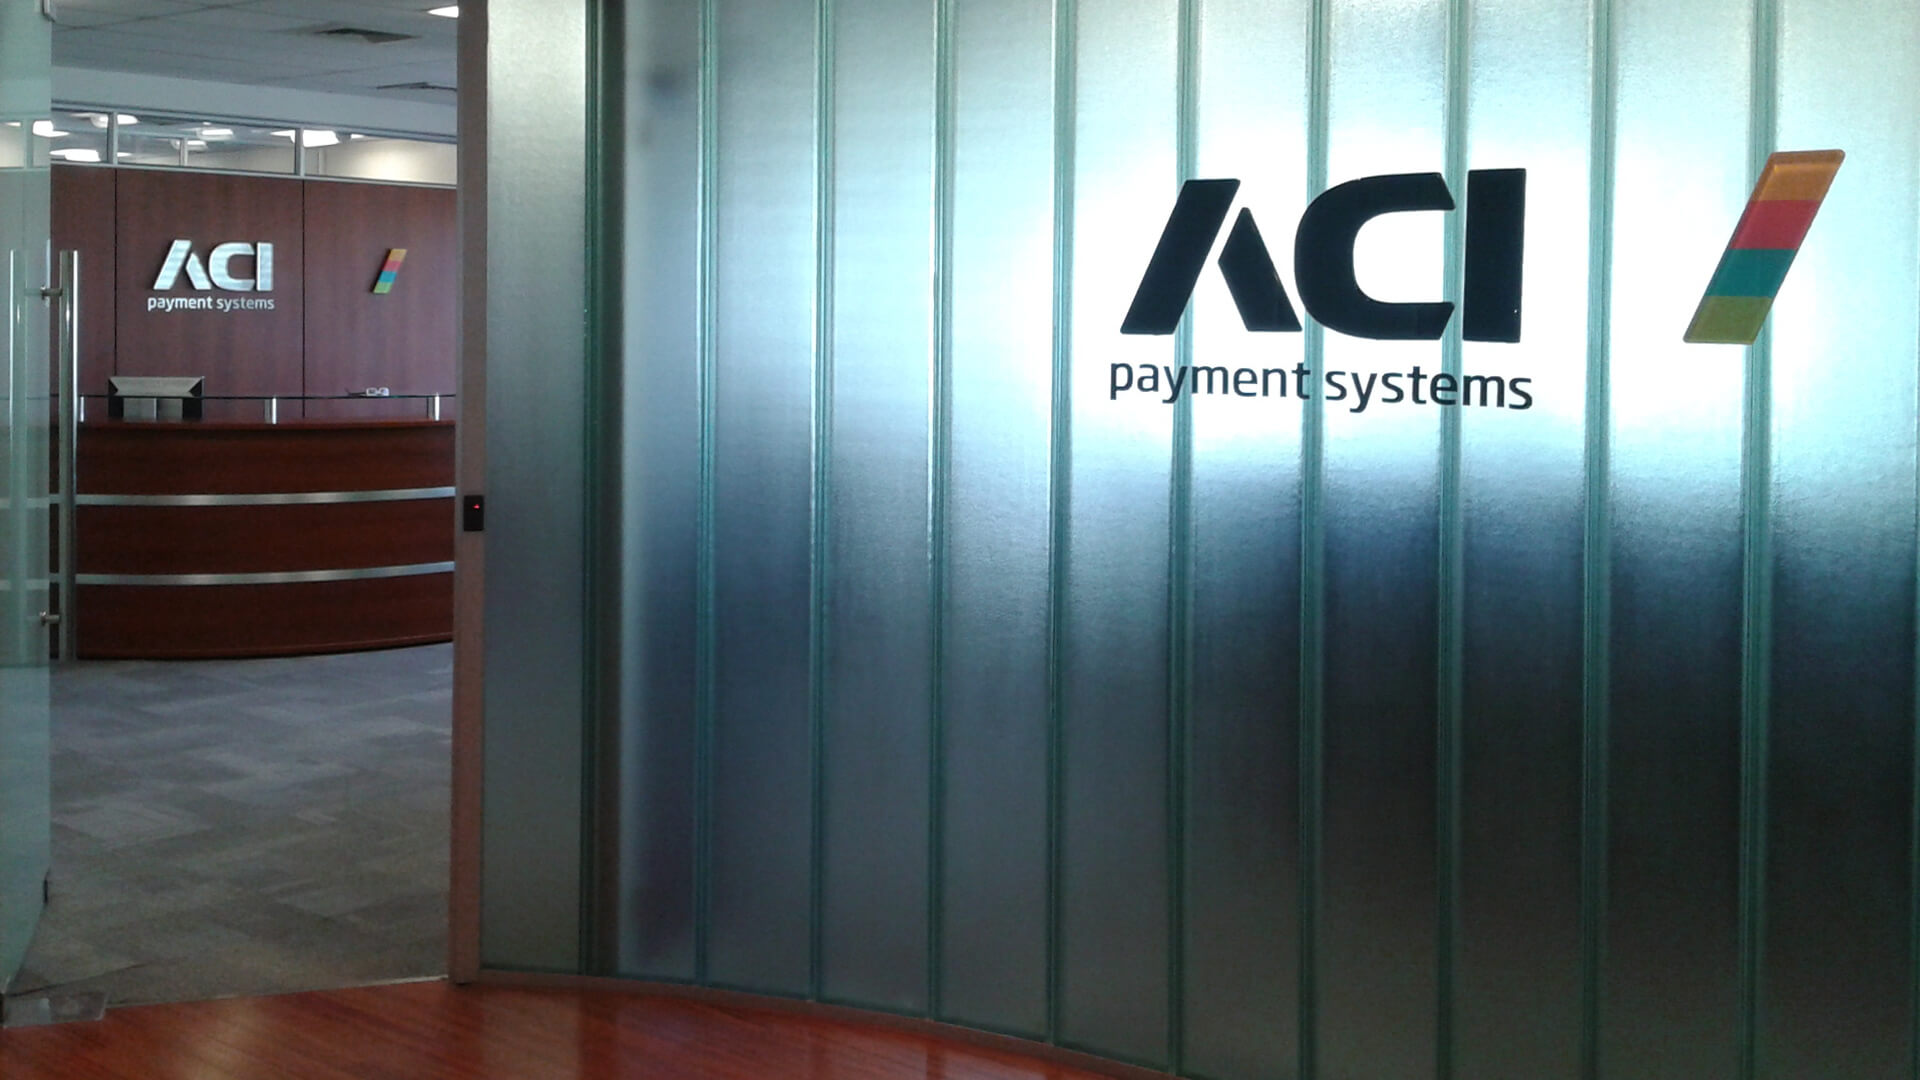 ACI payment systems brand identity messaging logo design signage